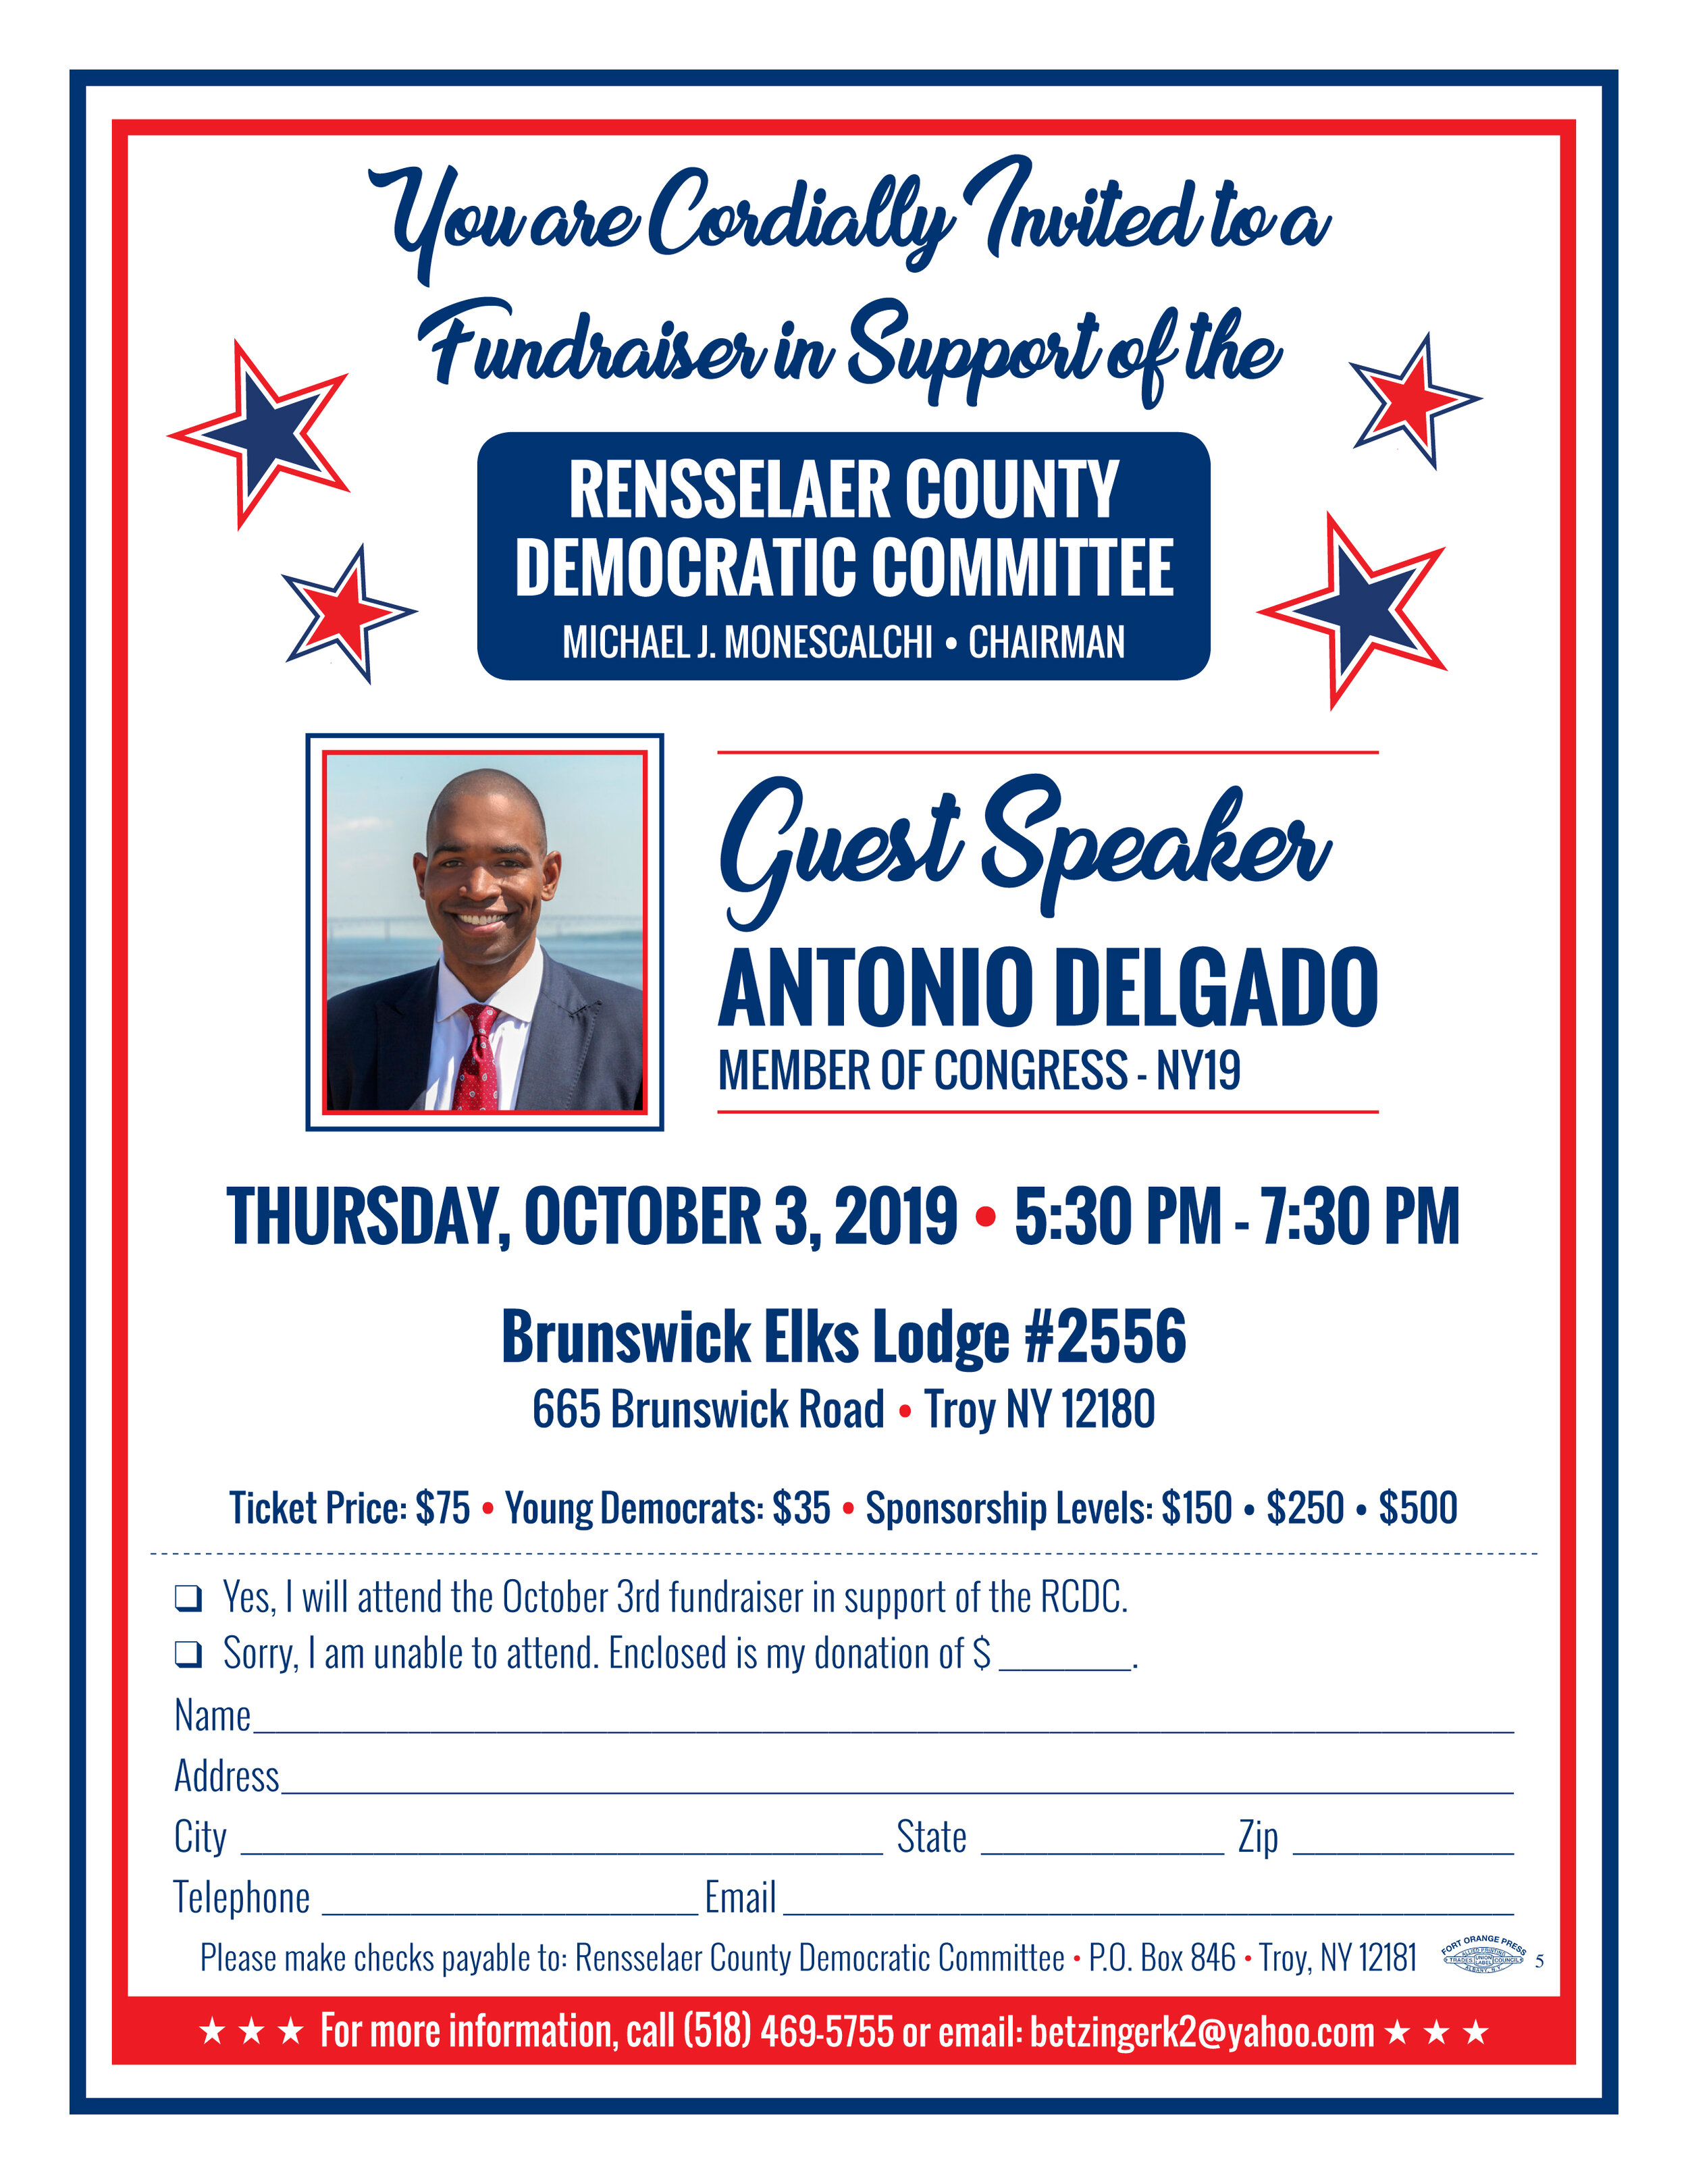 RCDC Fall 2019 Fundraiser Invitation.jpg